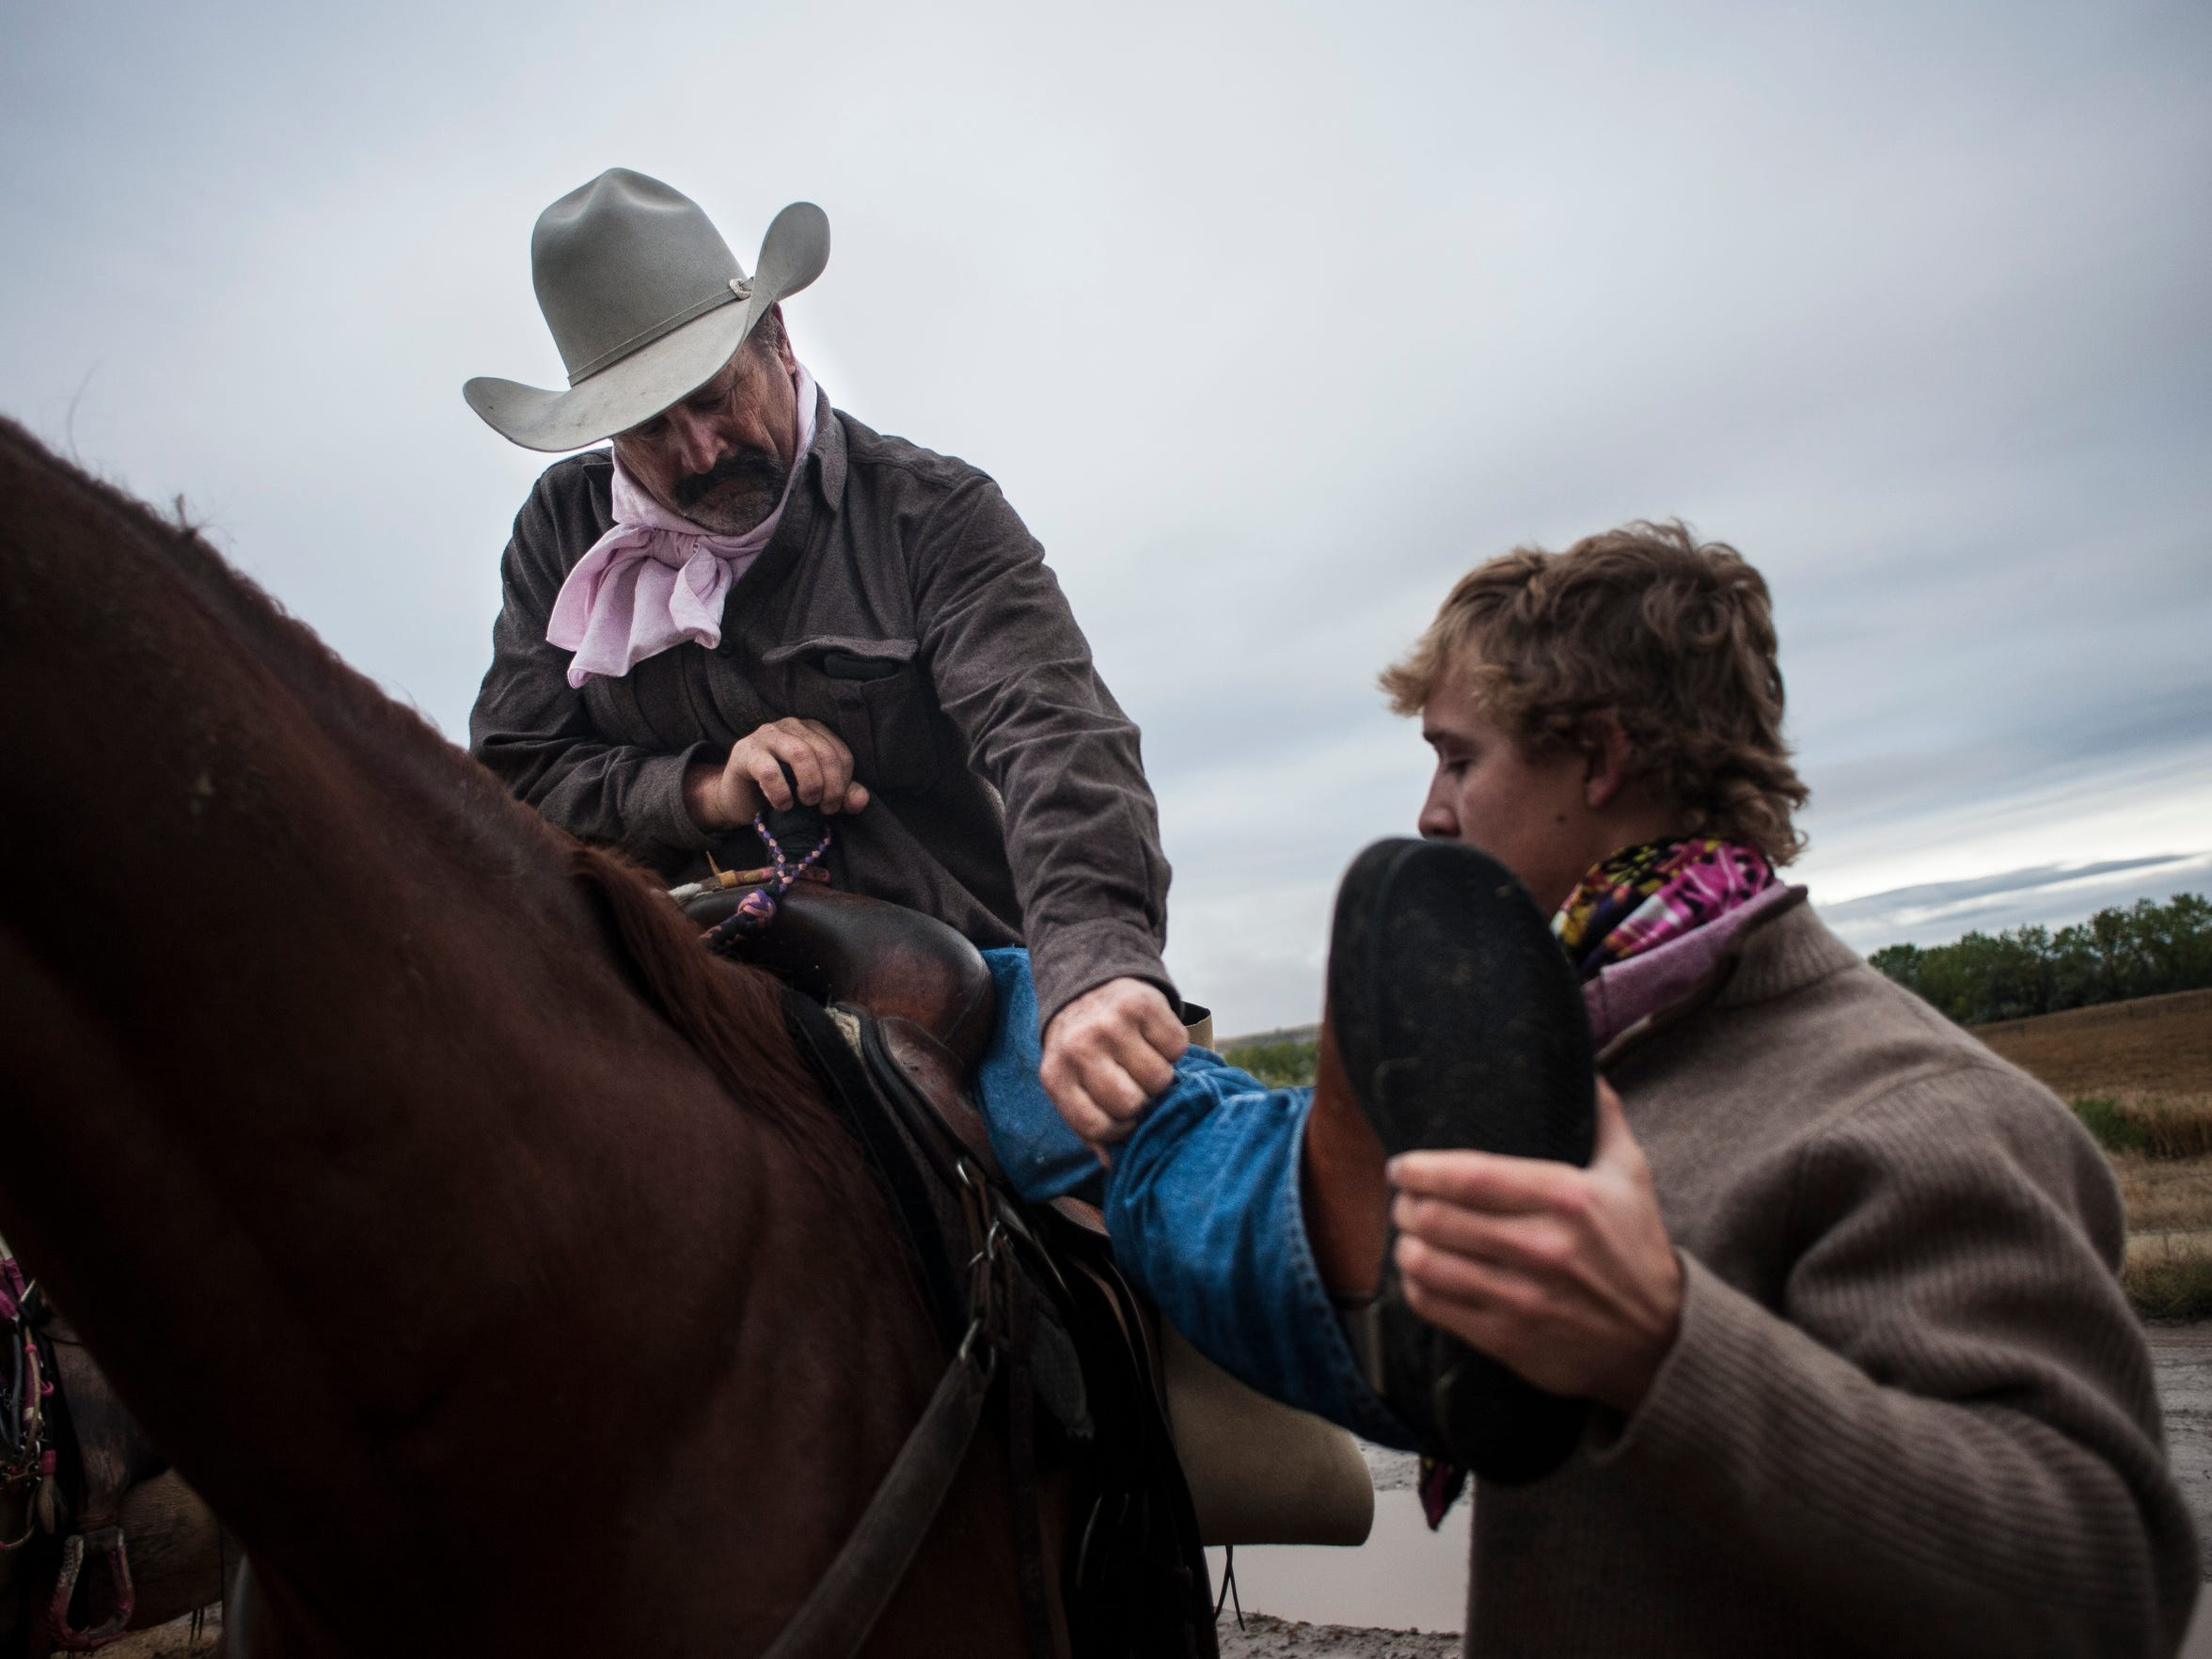 Though Toren needs his son, Brandon, to help him mount his horse, he can dismount on his own. Toren prefers to use leg braces that lock at the knee rather than a wheelchair because they provide better mobility on rough or muddy terrain.